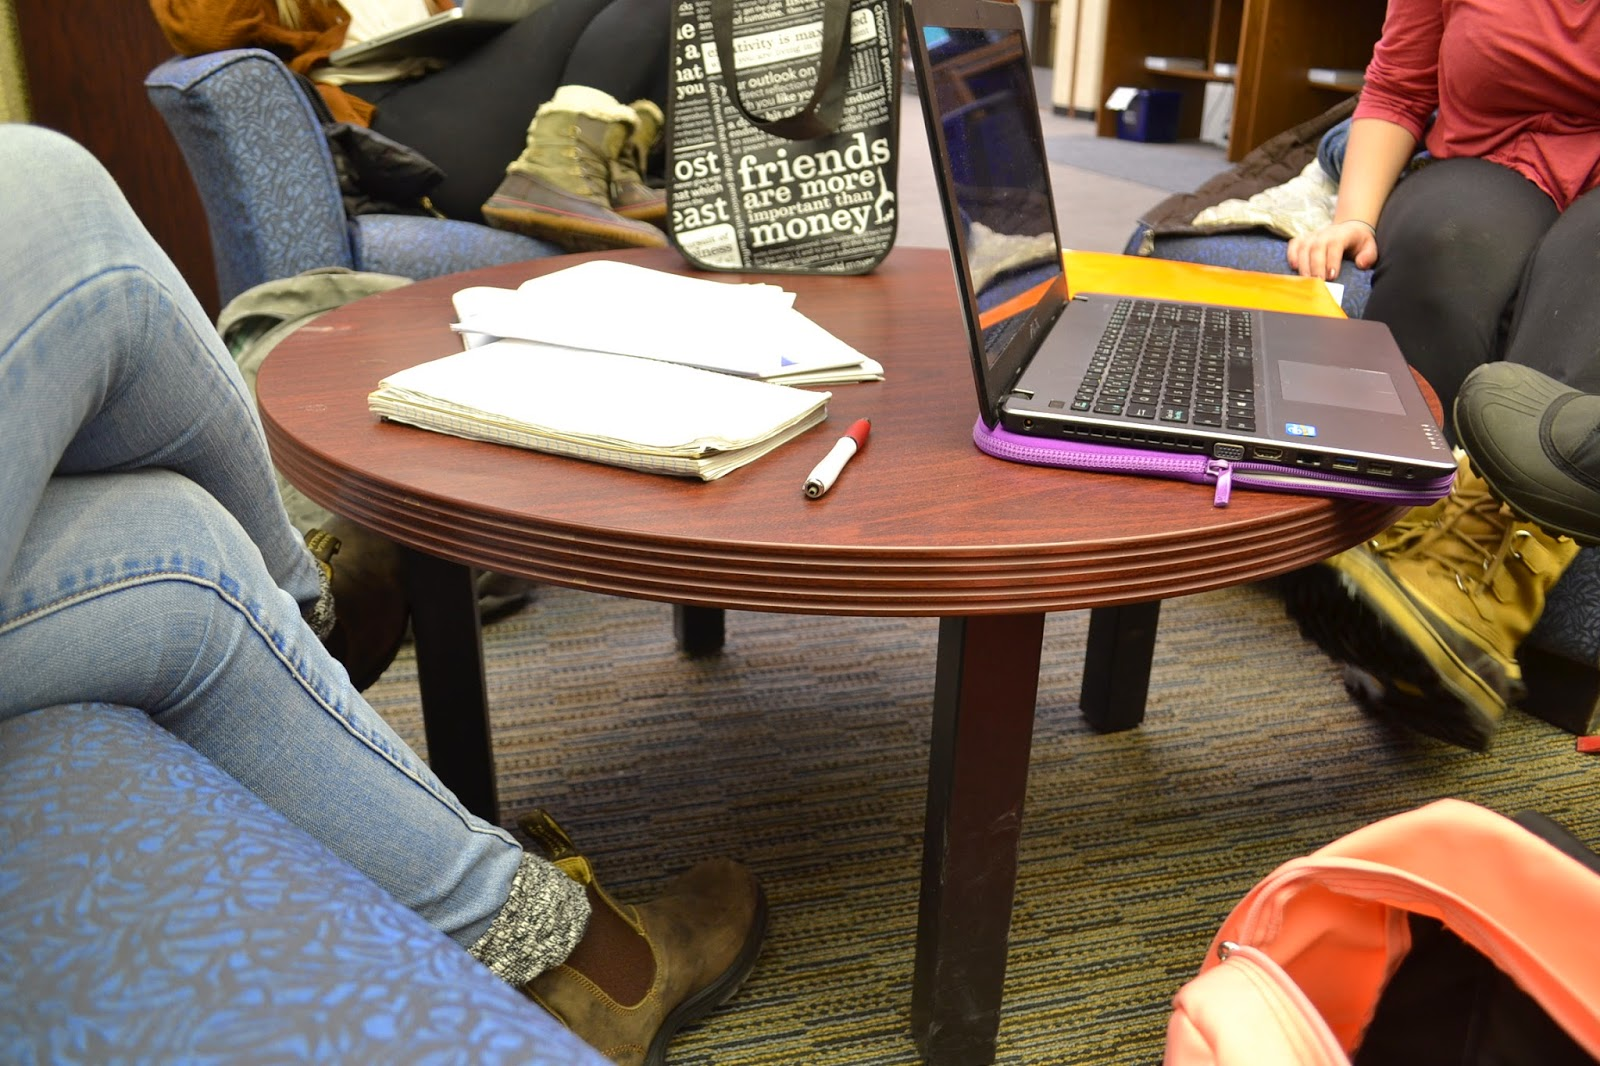 Image of people sitting around a round table.  Focus is on the open note book and laptop on table.